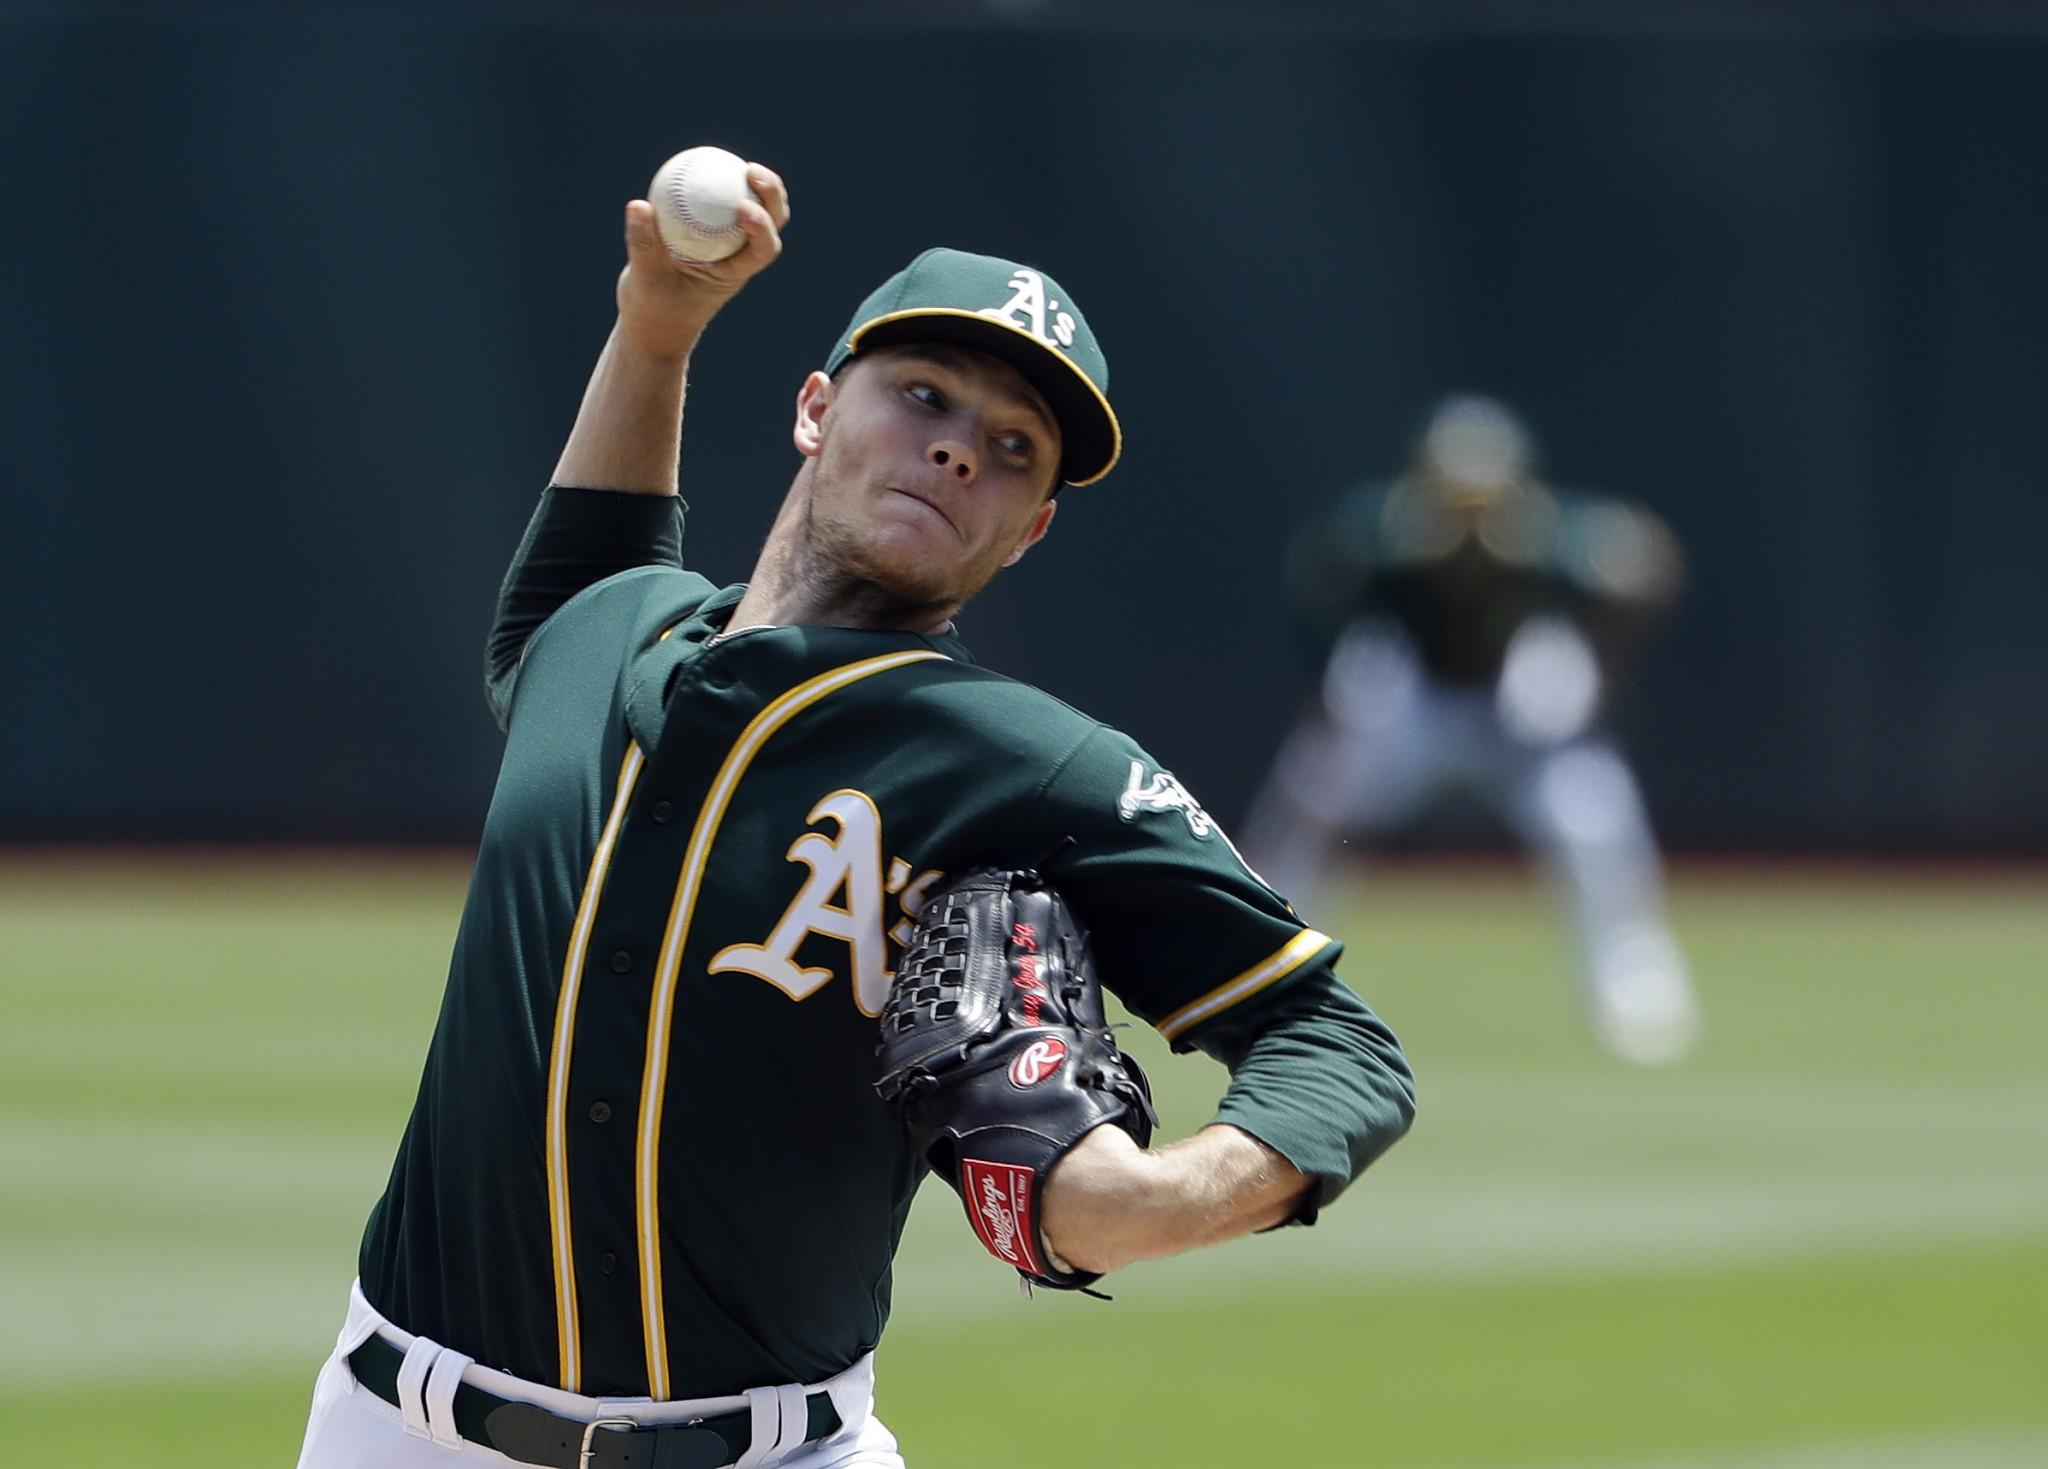 d366826ddea85 MLB trade deadline  Yankees acquire Sonny Gray from A s